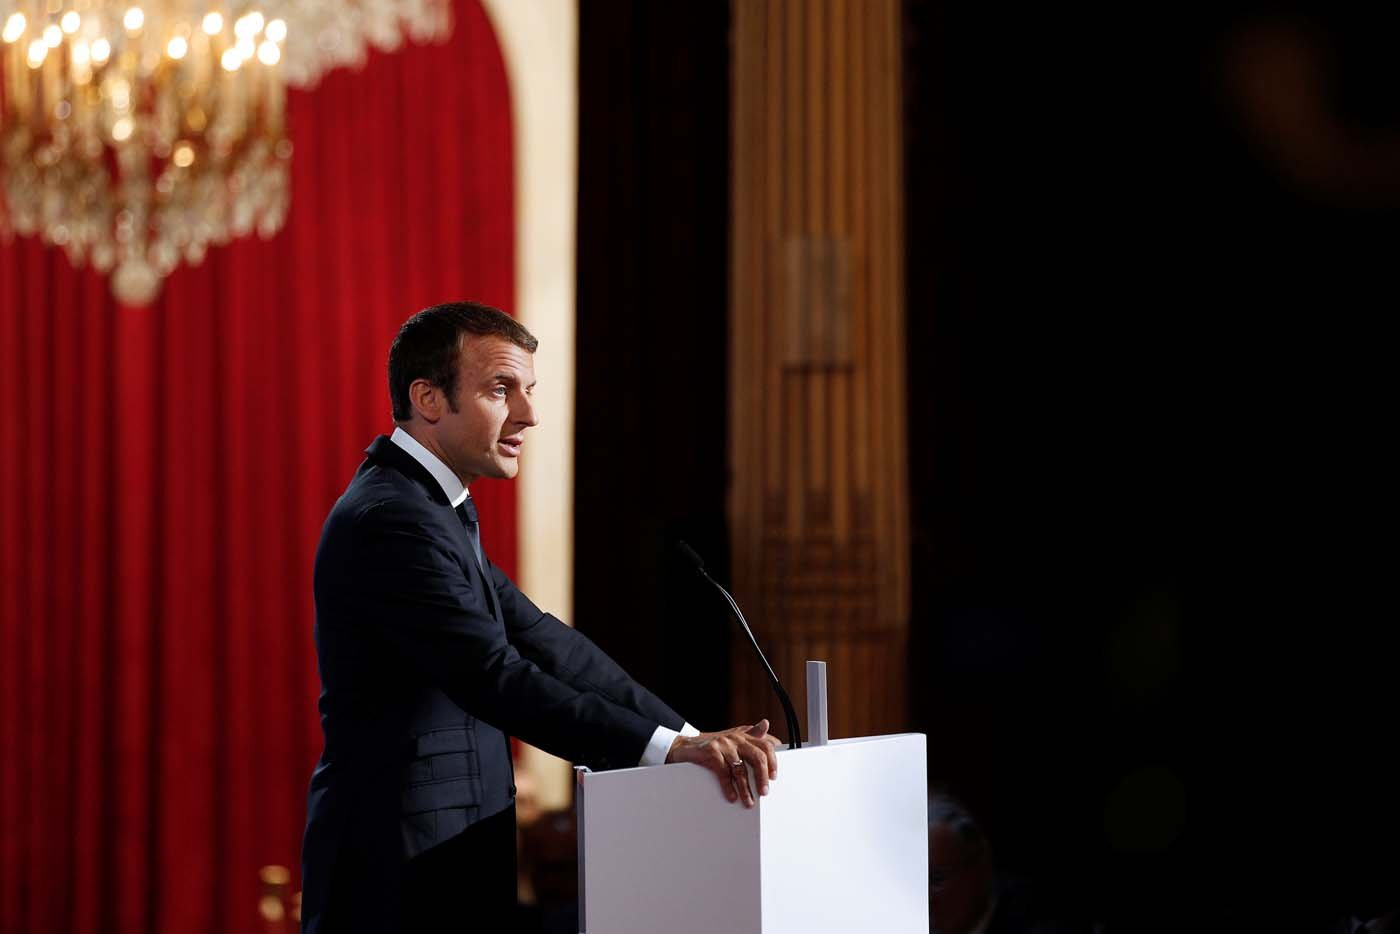 French President Emmanuel Macron addresses a speech during the annual gathering of French Ambassadors at the Elysee Palace in Paris, France, August 29, 2017. REUTERS/Yoan Valat/Pool